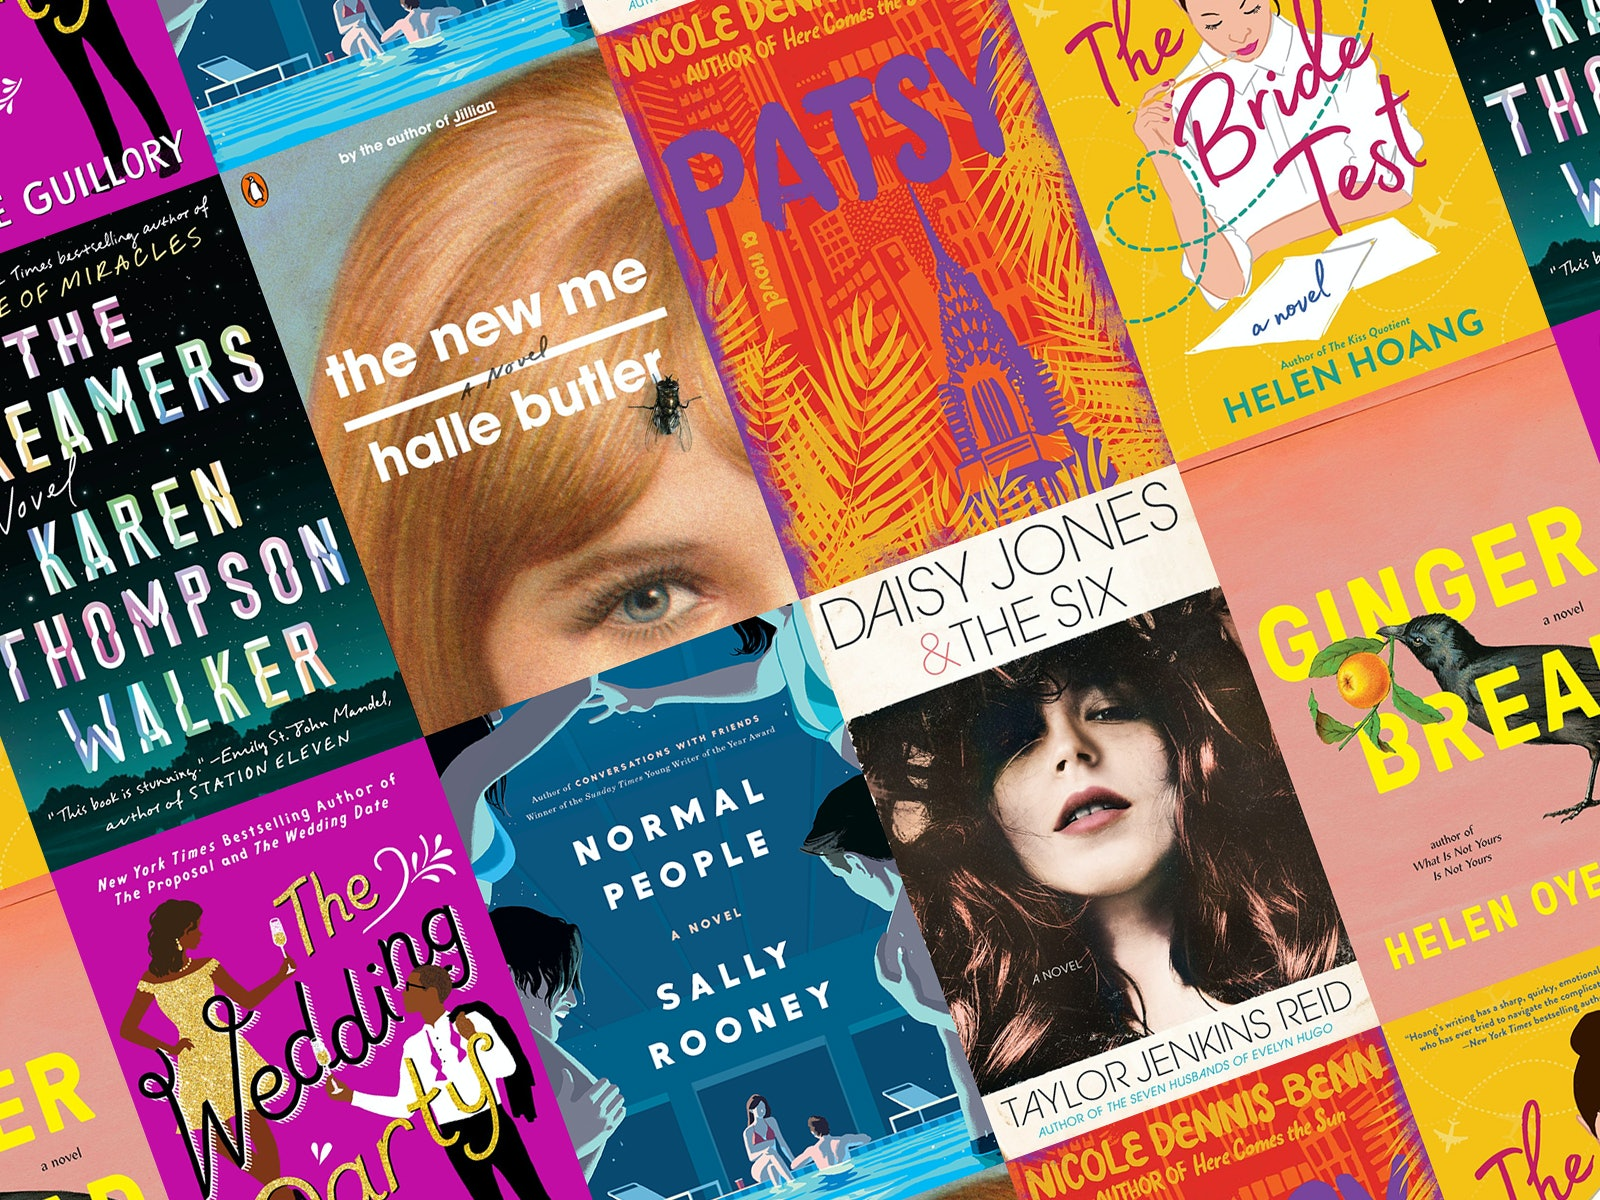 39 Fiction Books Coming Out In 2019 To Add To Your Reading List For